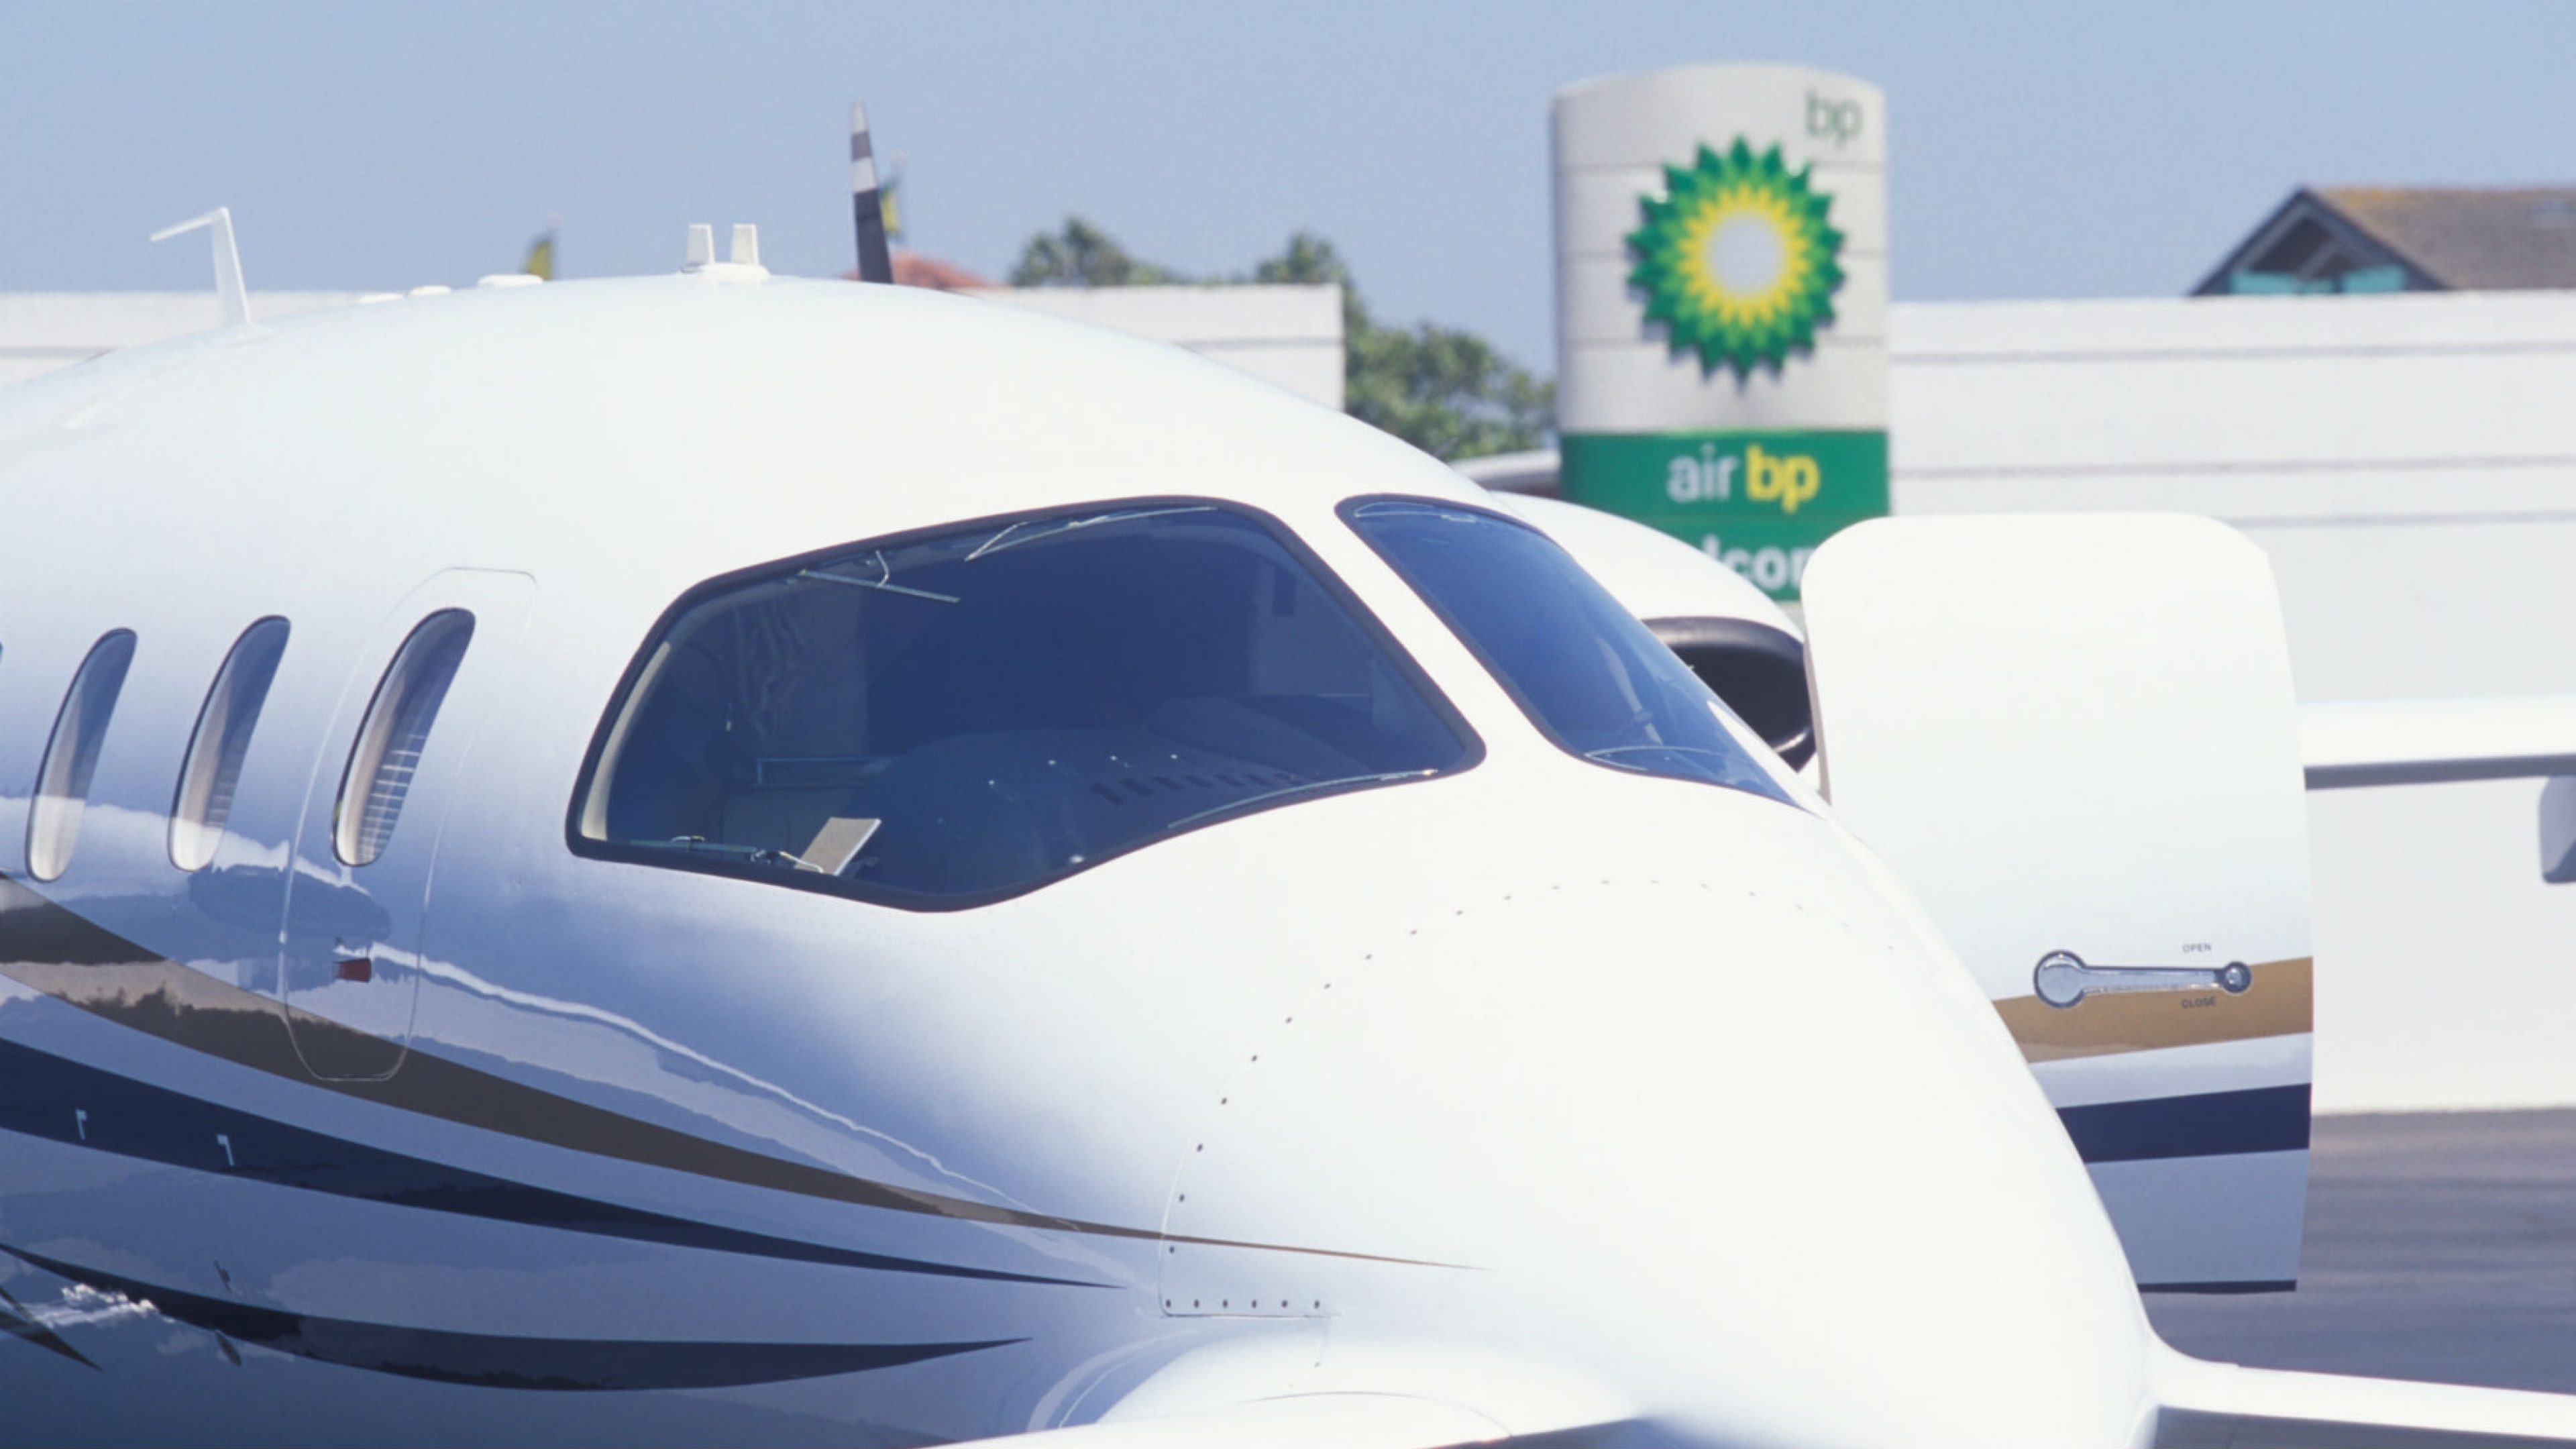 Signature Flight Support >> Air Bp Signs New Agreement With Signature Flight Support News And